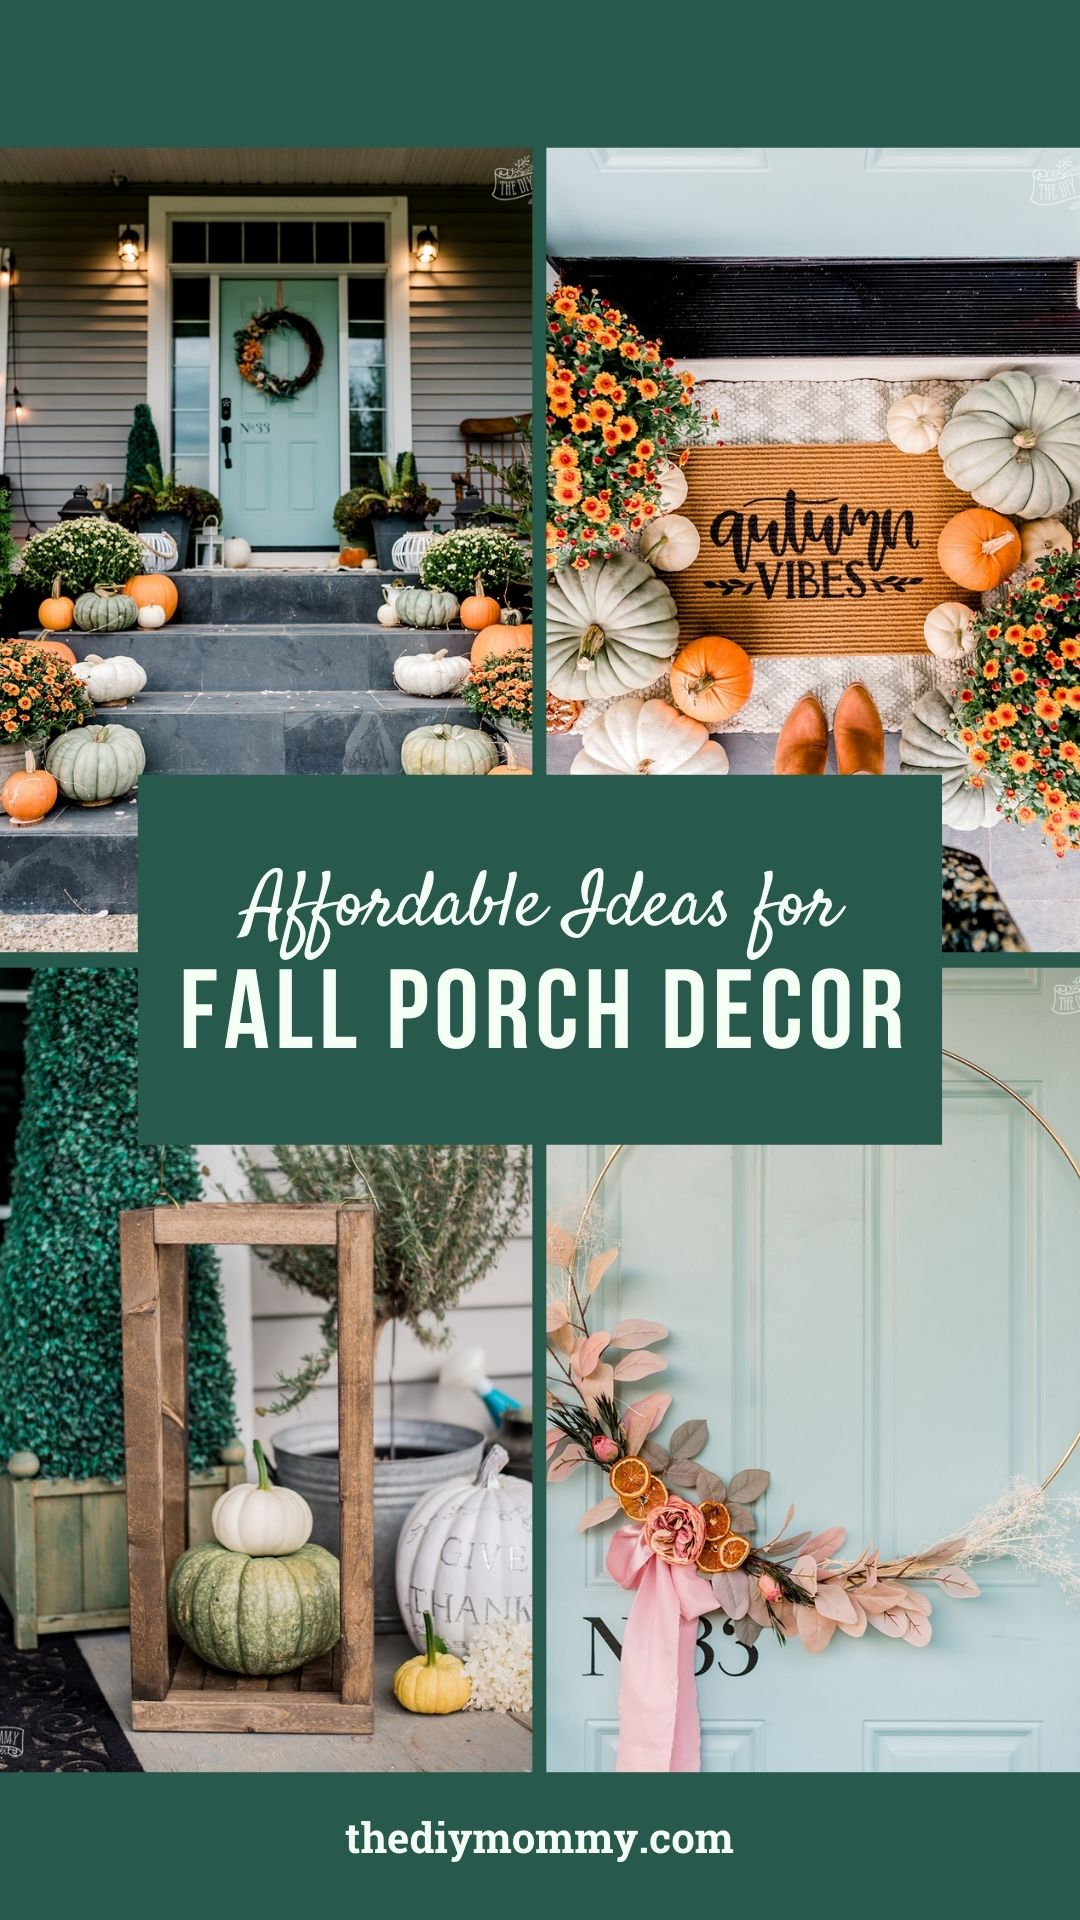 These 7 affordable fall porch decor ideas are simple DIYs that will give your home major Autumn curb appeal.